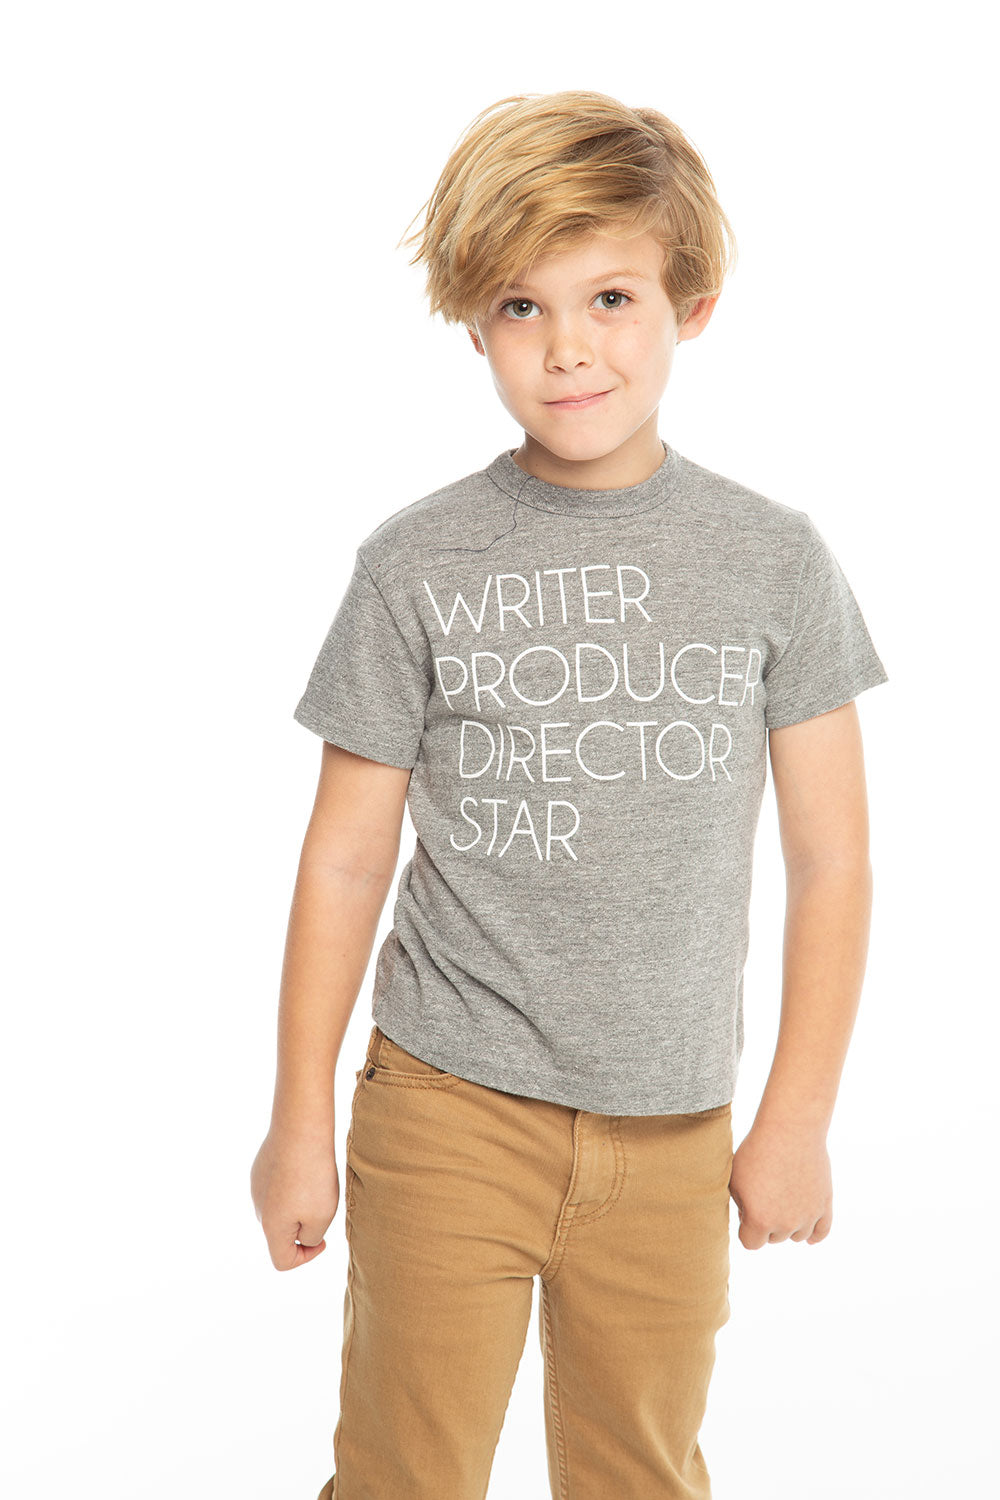 Movie Star, BOYS, chaserbrand.com,chaser clothing,chaser apparel,chaser los angeles